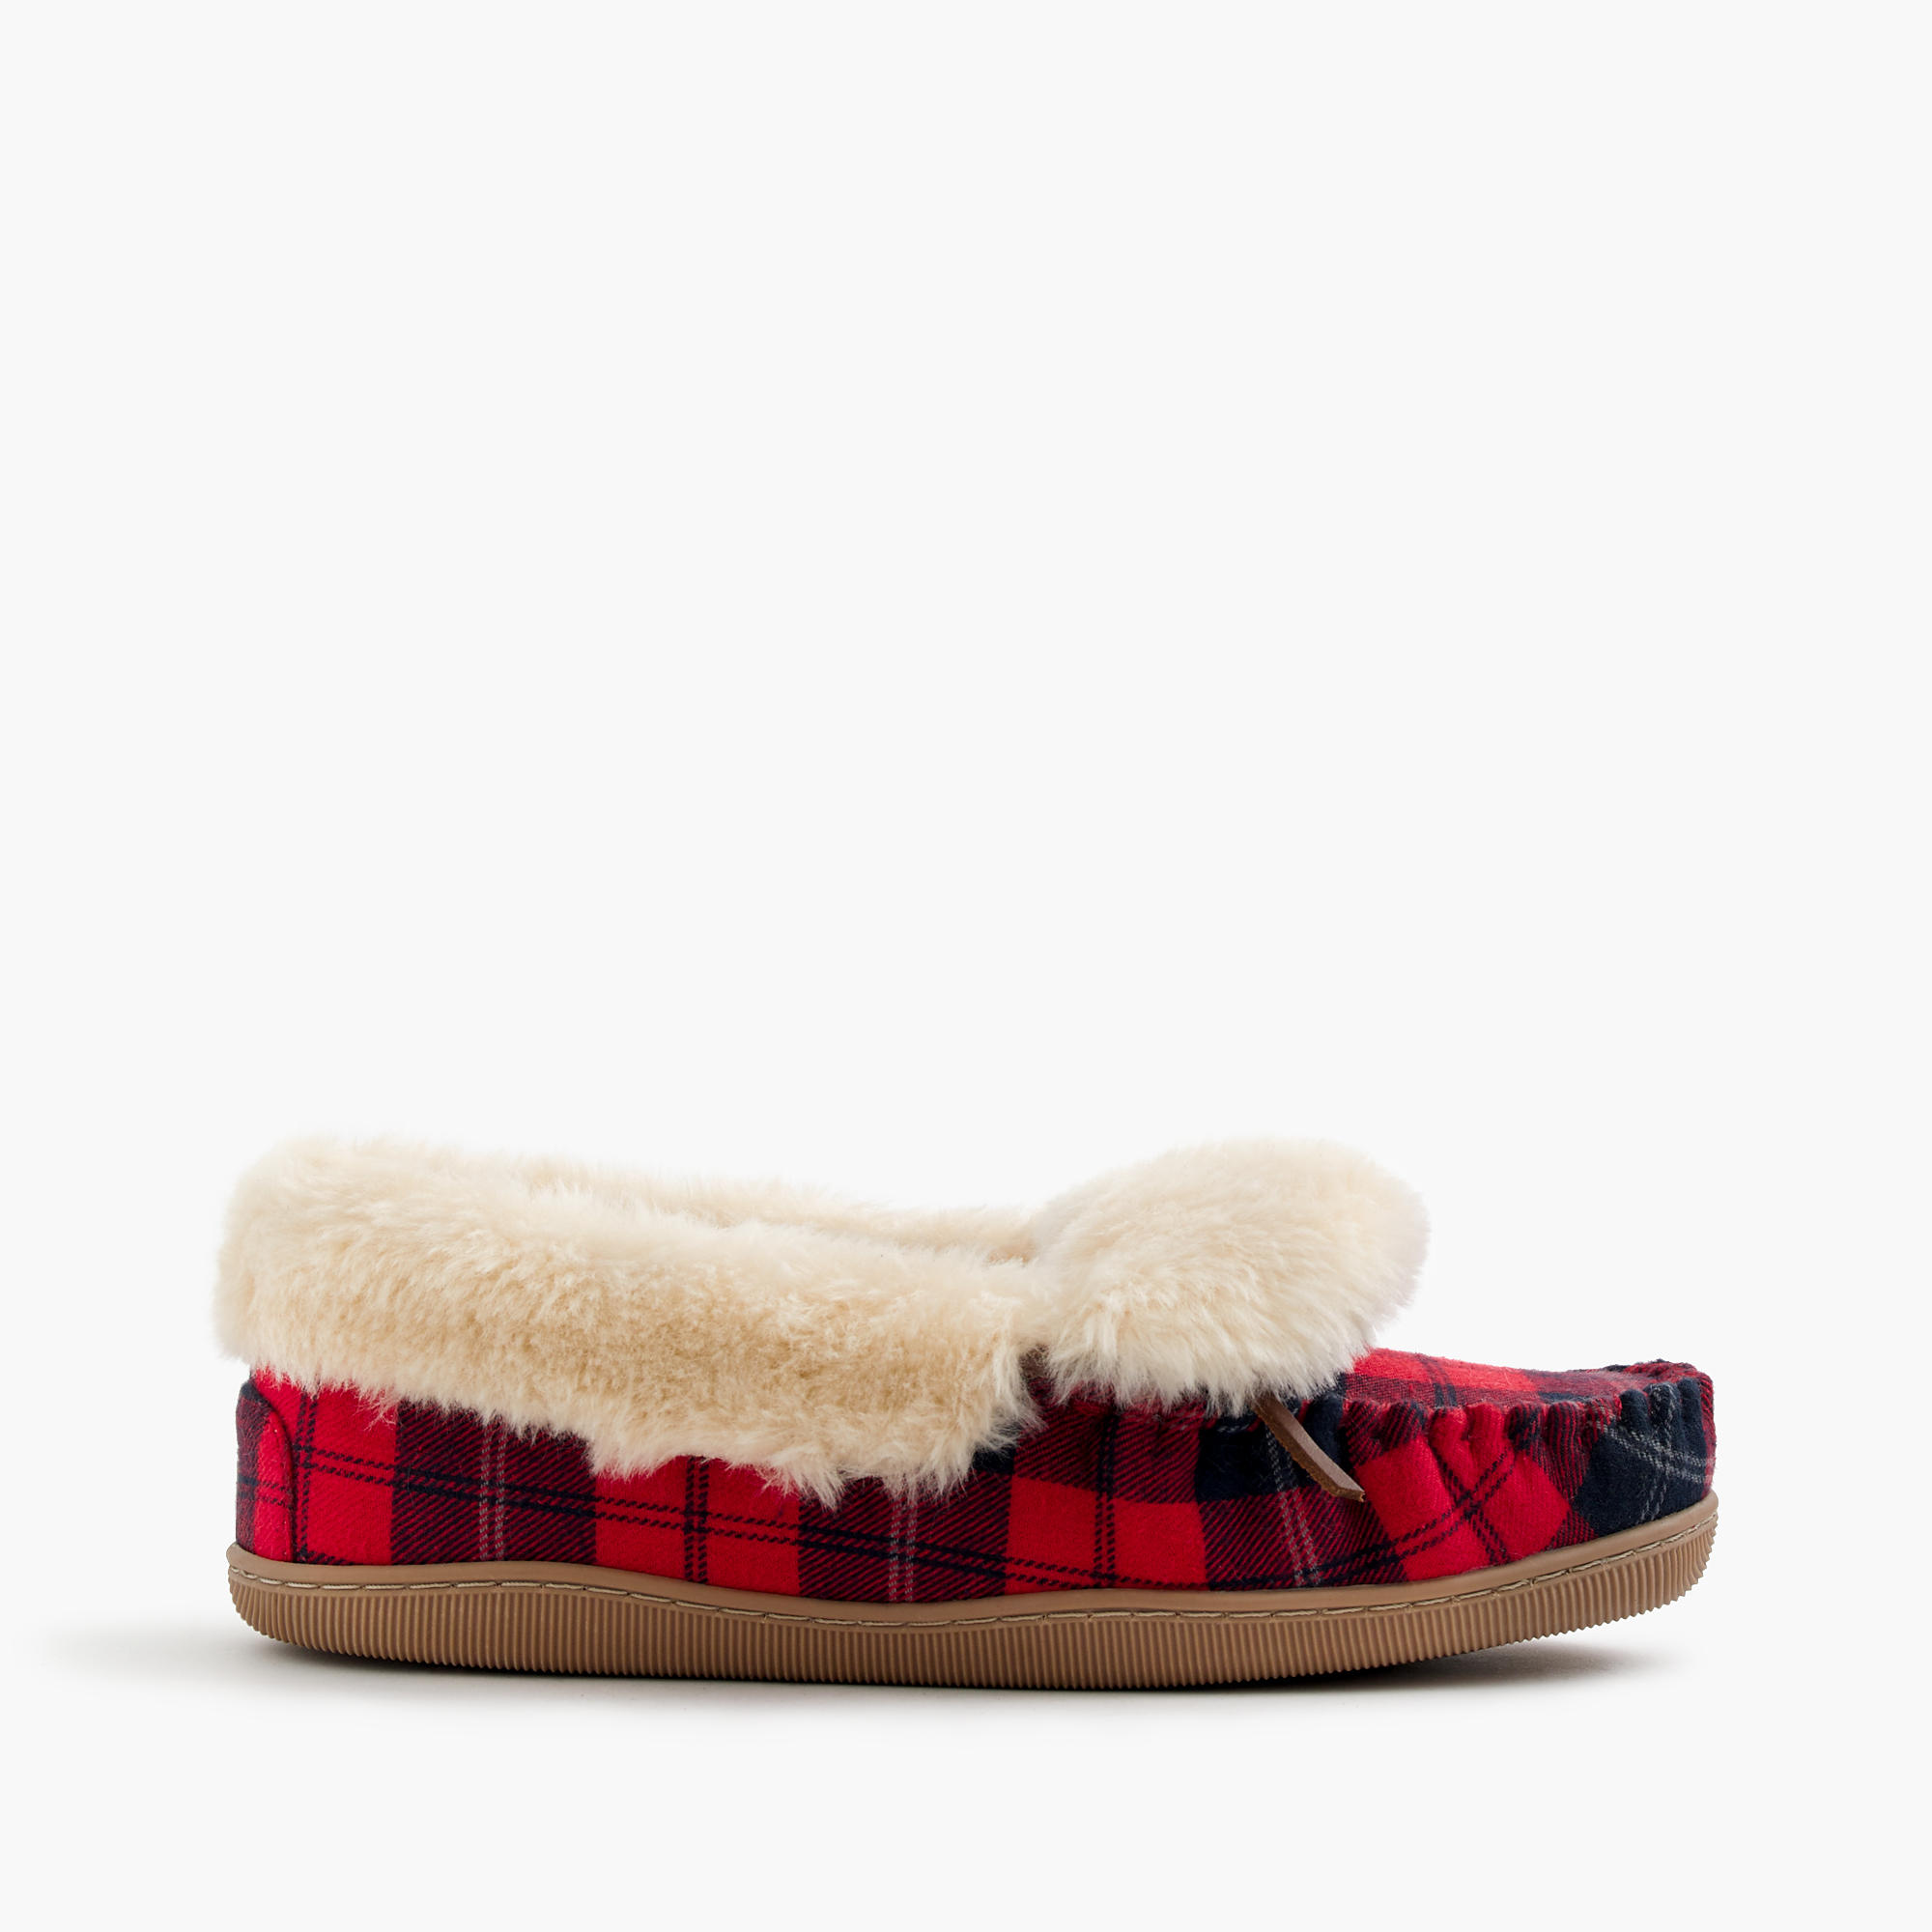 Plaid lodge moccasins women 39 s slippers j crew for J crew bedroom slippers